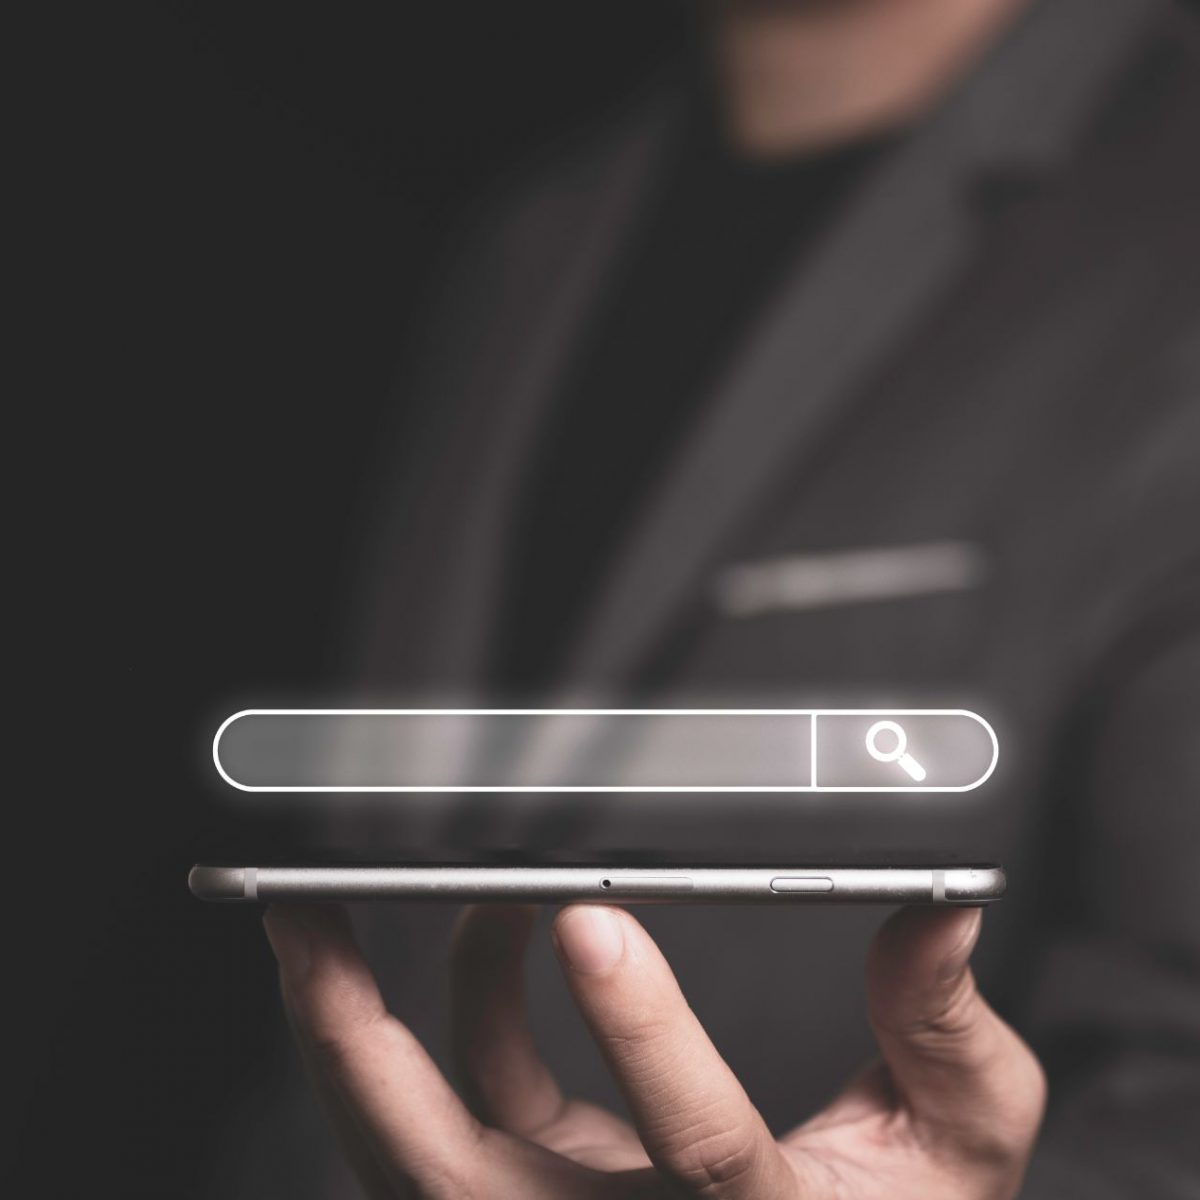 search-engine-optimisation-seo-concept-businessman-holding-smartphone-using-input-keyword-searching-find-information (1)